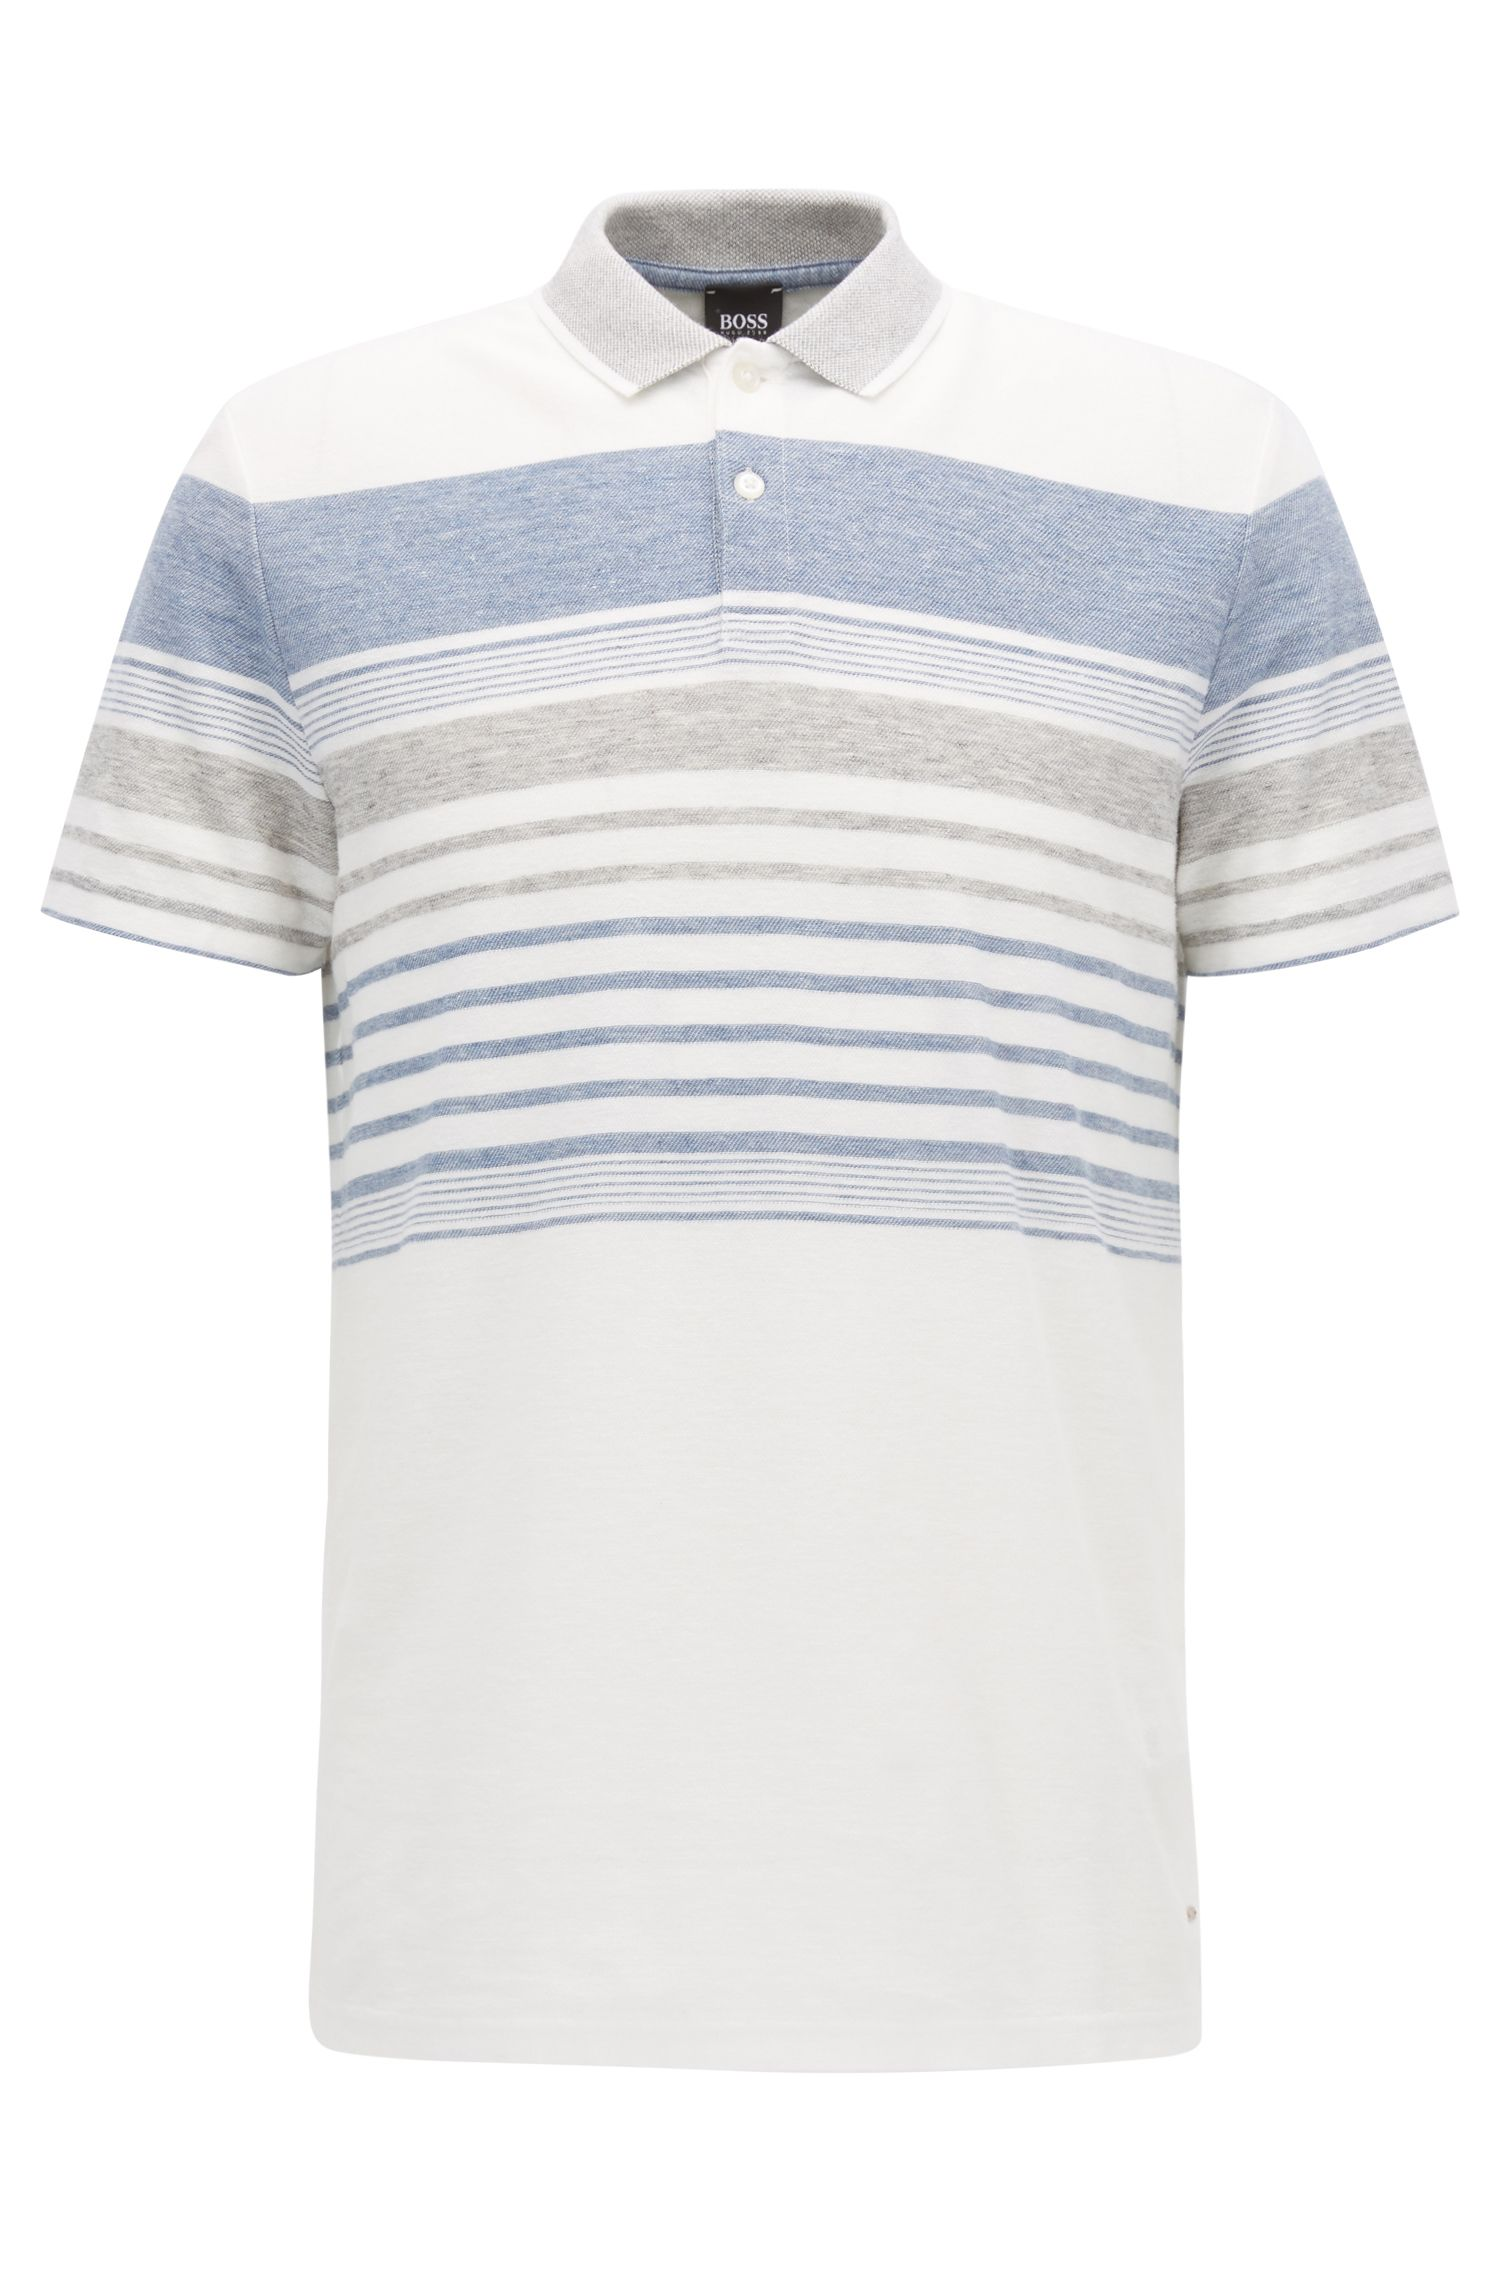 Cotton Linen Polo Shirt, Relaxed Fit | Pilak